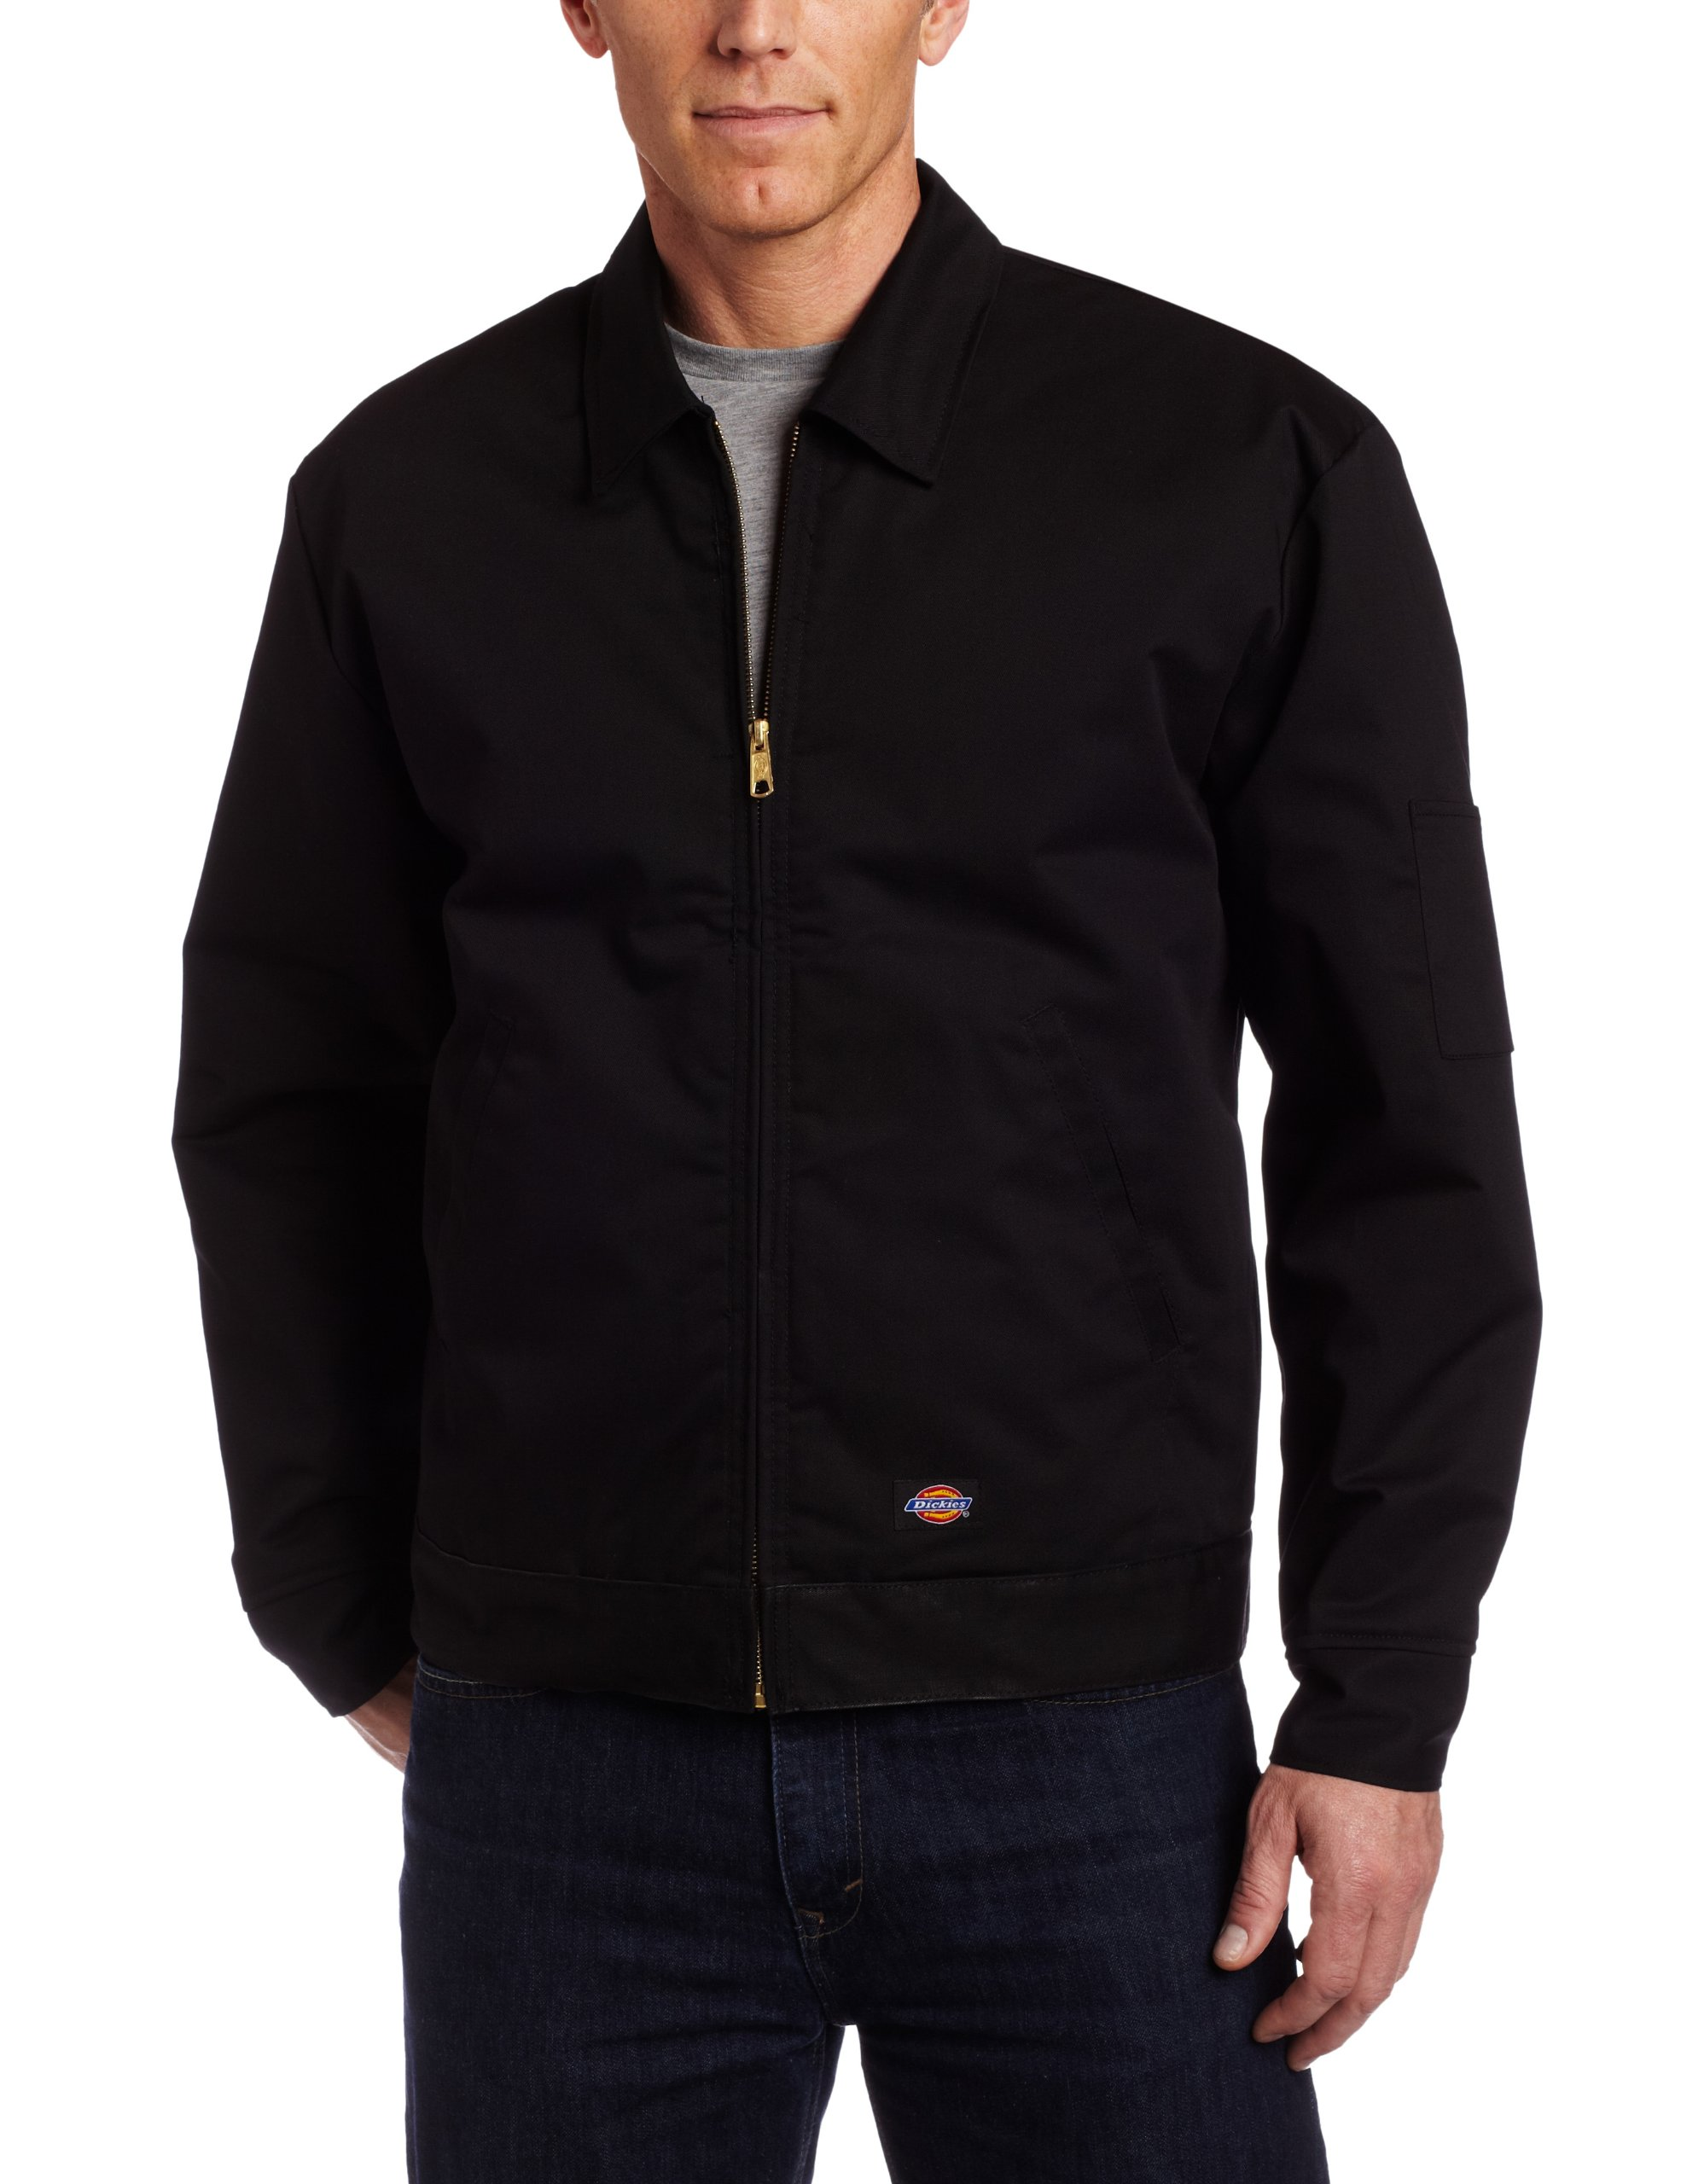 Dickies Men's Big-Tall Insulated Eisenhower Jacket, Black, X-Large Tall by dickies